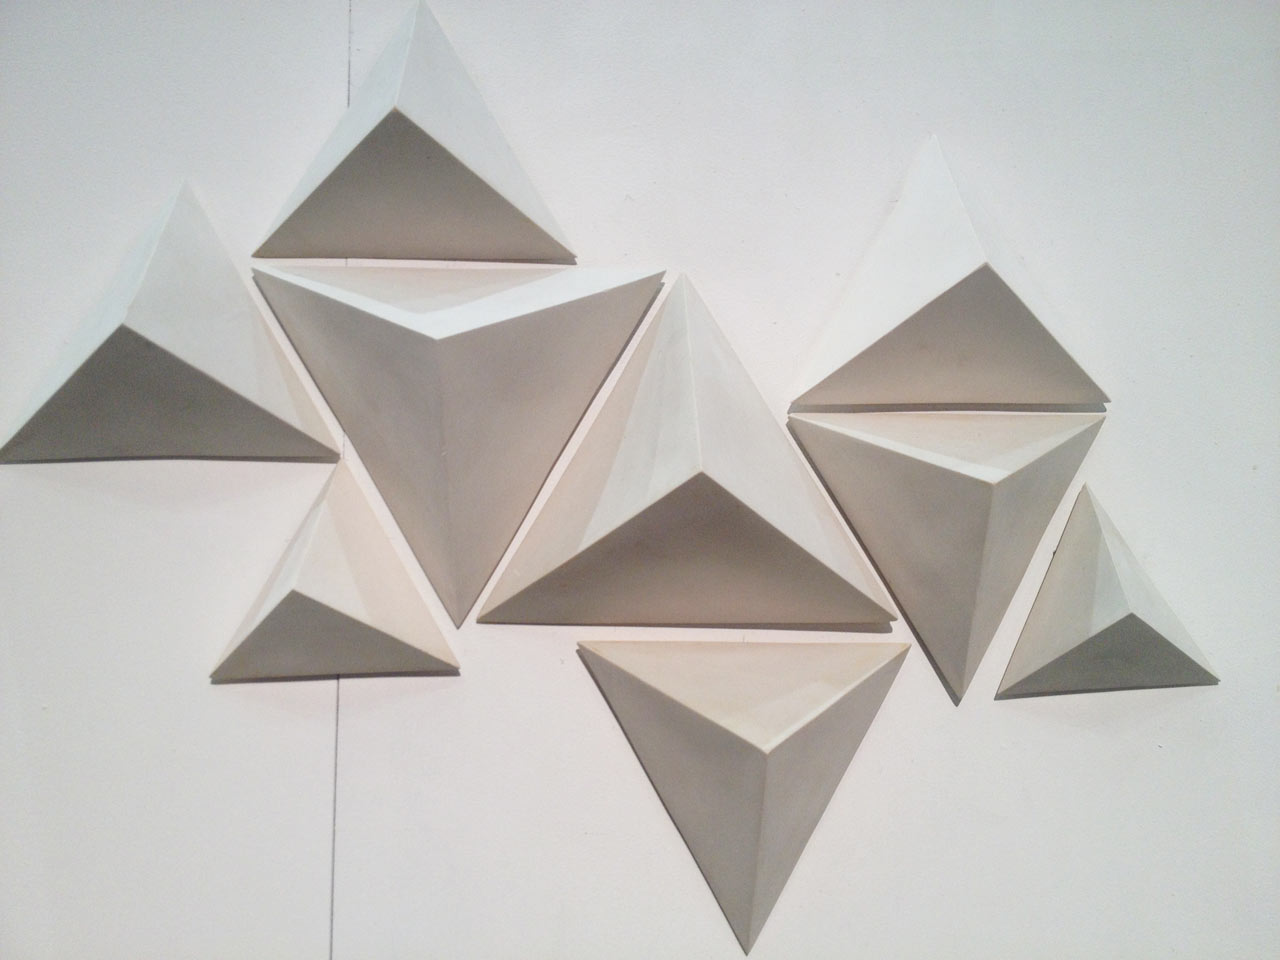 haand-faceted-wall-tile-sculptures